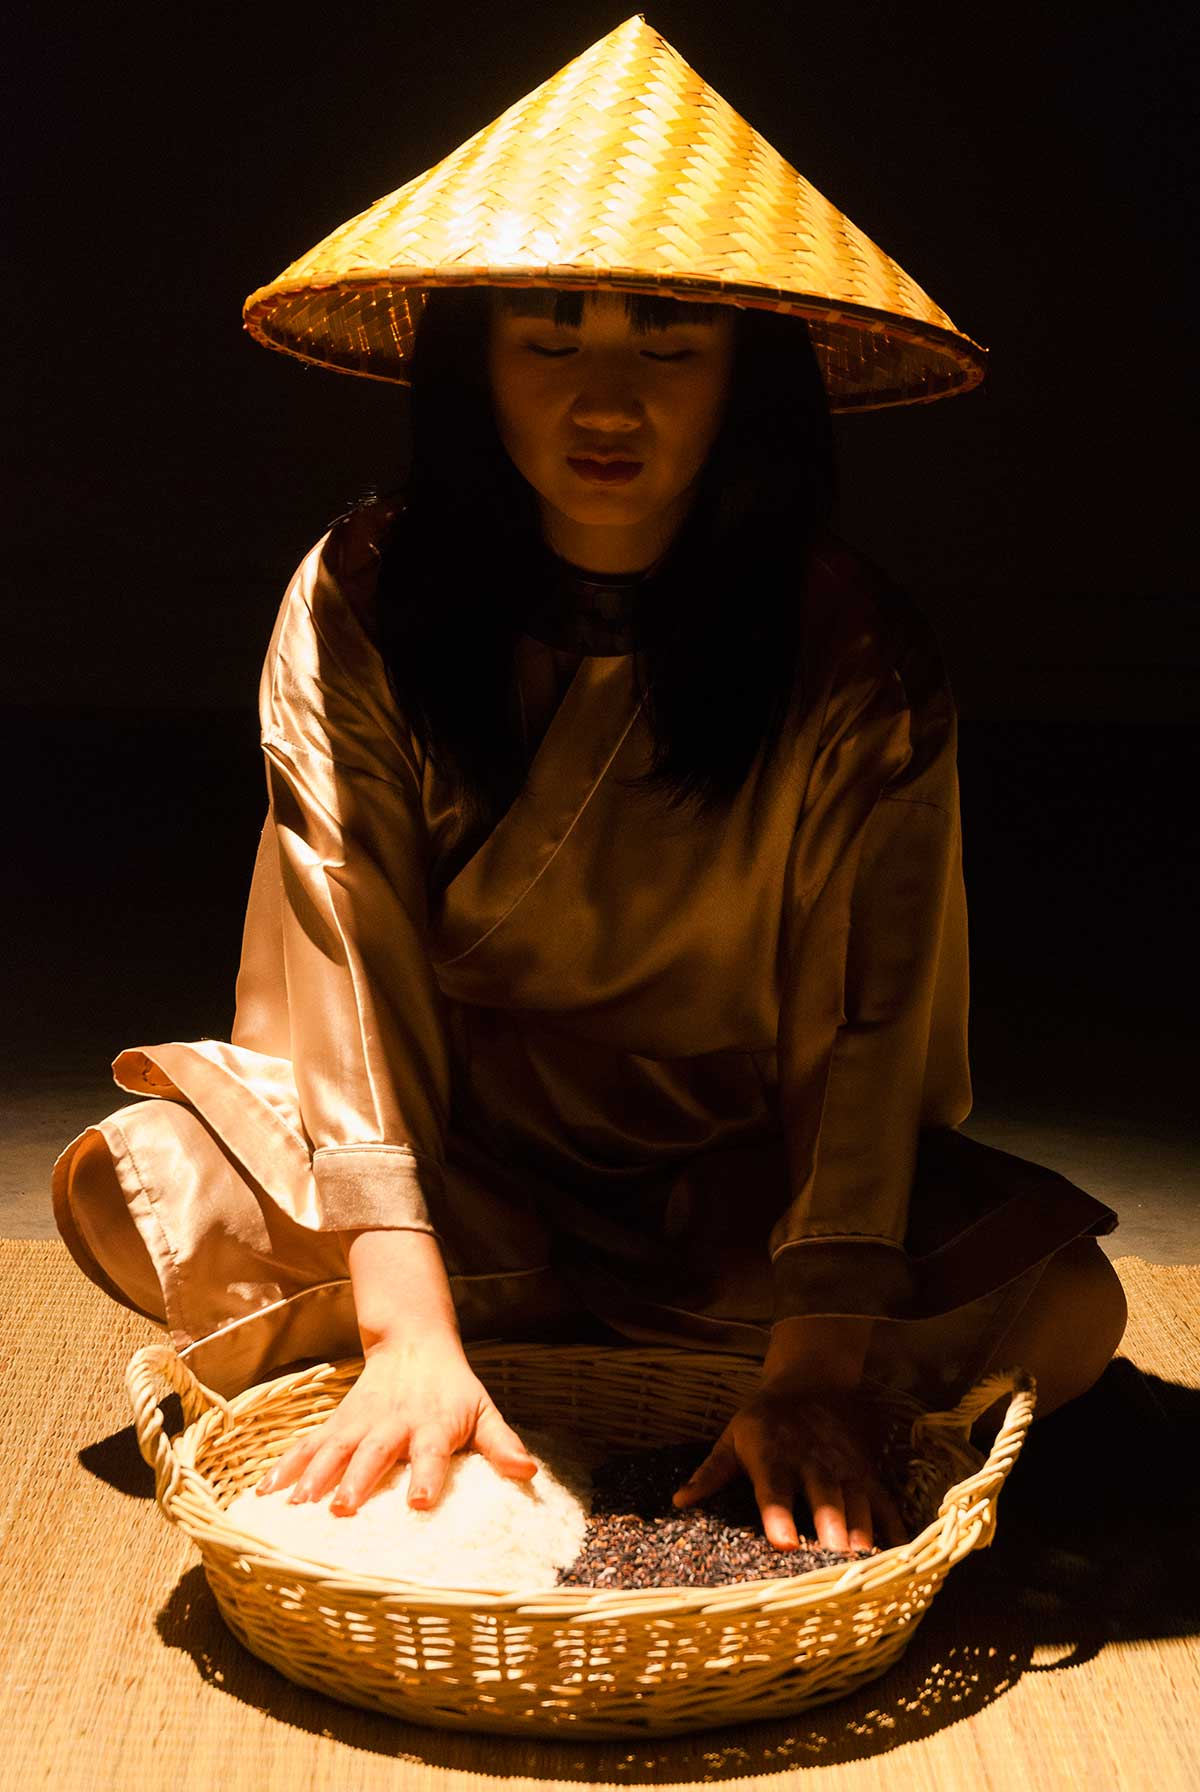 Chun Hua Catherine Dong closes her eyes, sits on a mat and gently touches the black and white rice in front of her, she is ready to perform her rice performance